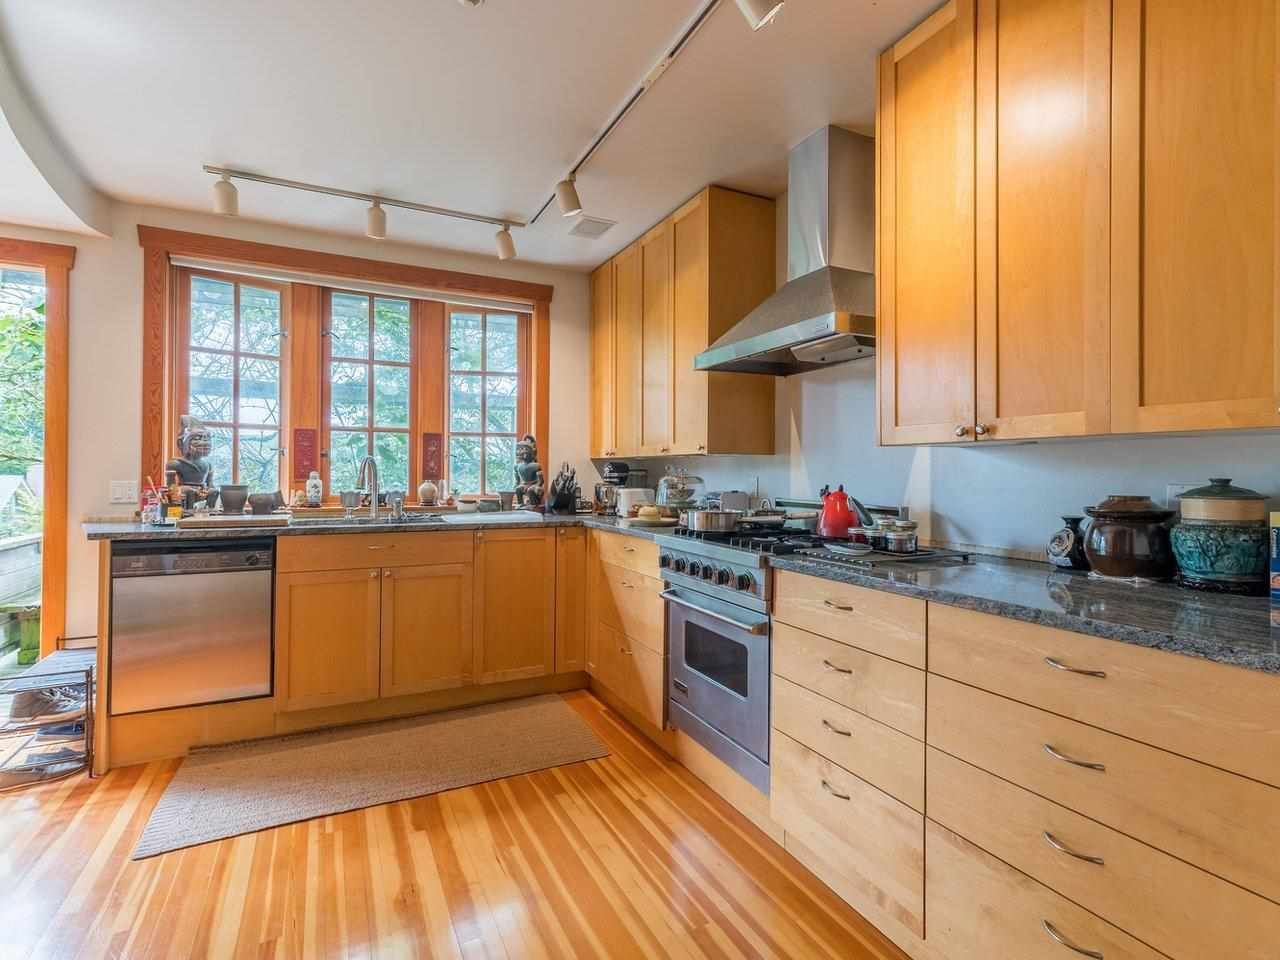 Photo 8: Photos: 2556 W 2ND Avenue in Vancouver: Kitsilano House for sale (Vancouver West)  : MLS®# R2593228